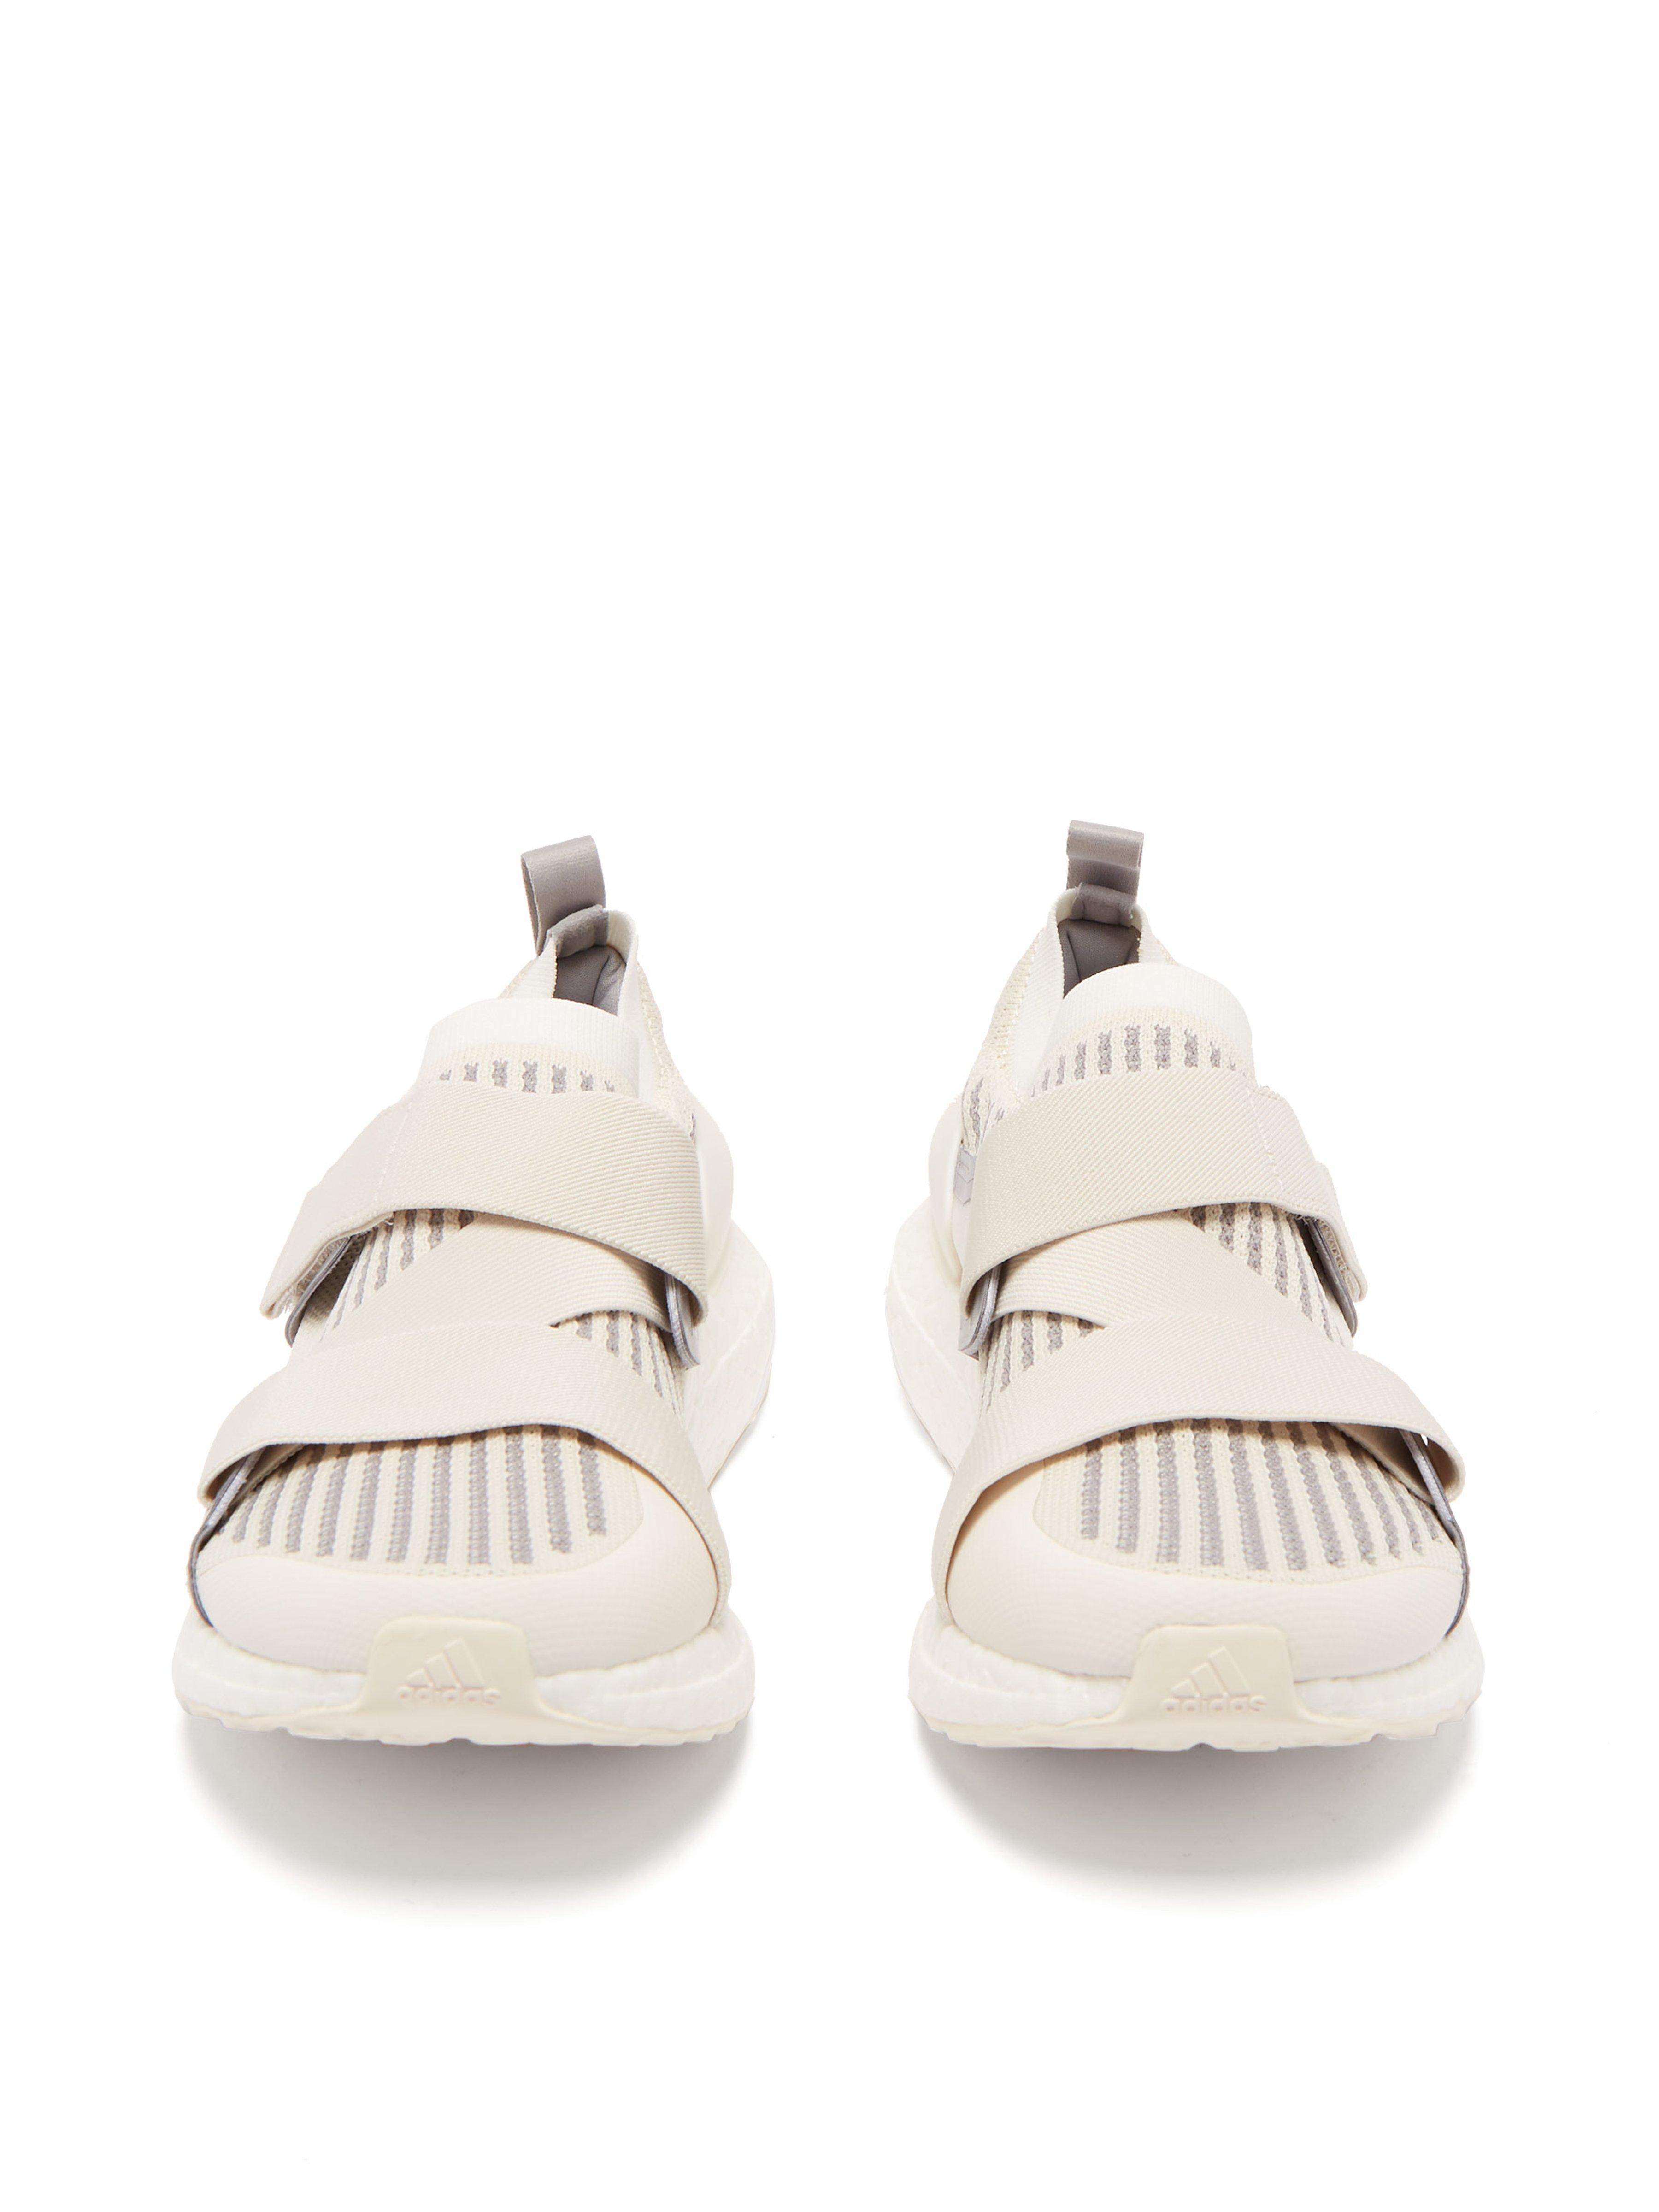 4770dffabedc0 Adidas By Stella McCartney - Multicolor Ultraboost X Low Top Trainers -  Lyst. View fullscreen